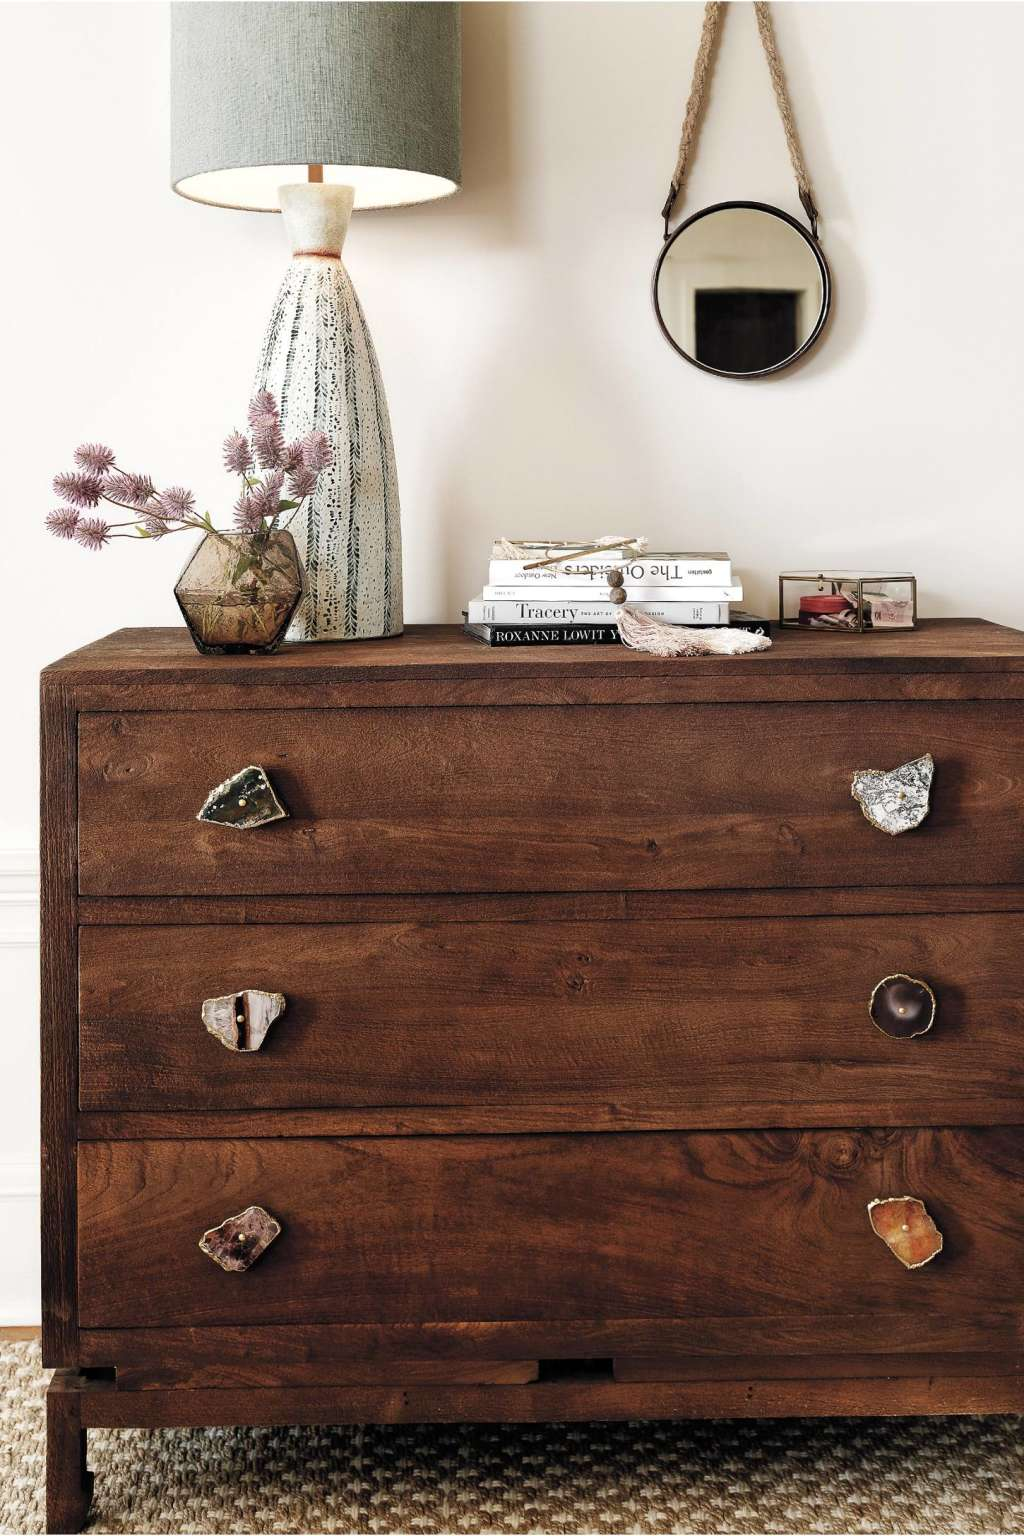 DIY Drawer Pulls: Easy Ways to Customize Furniture